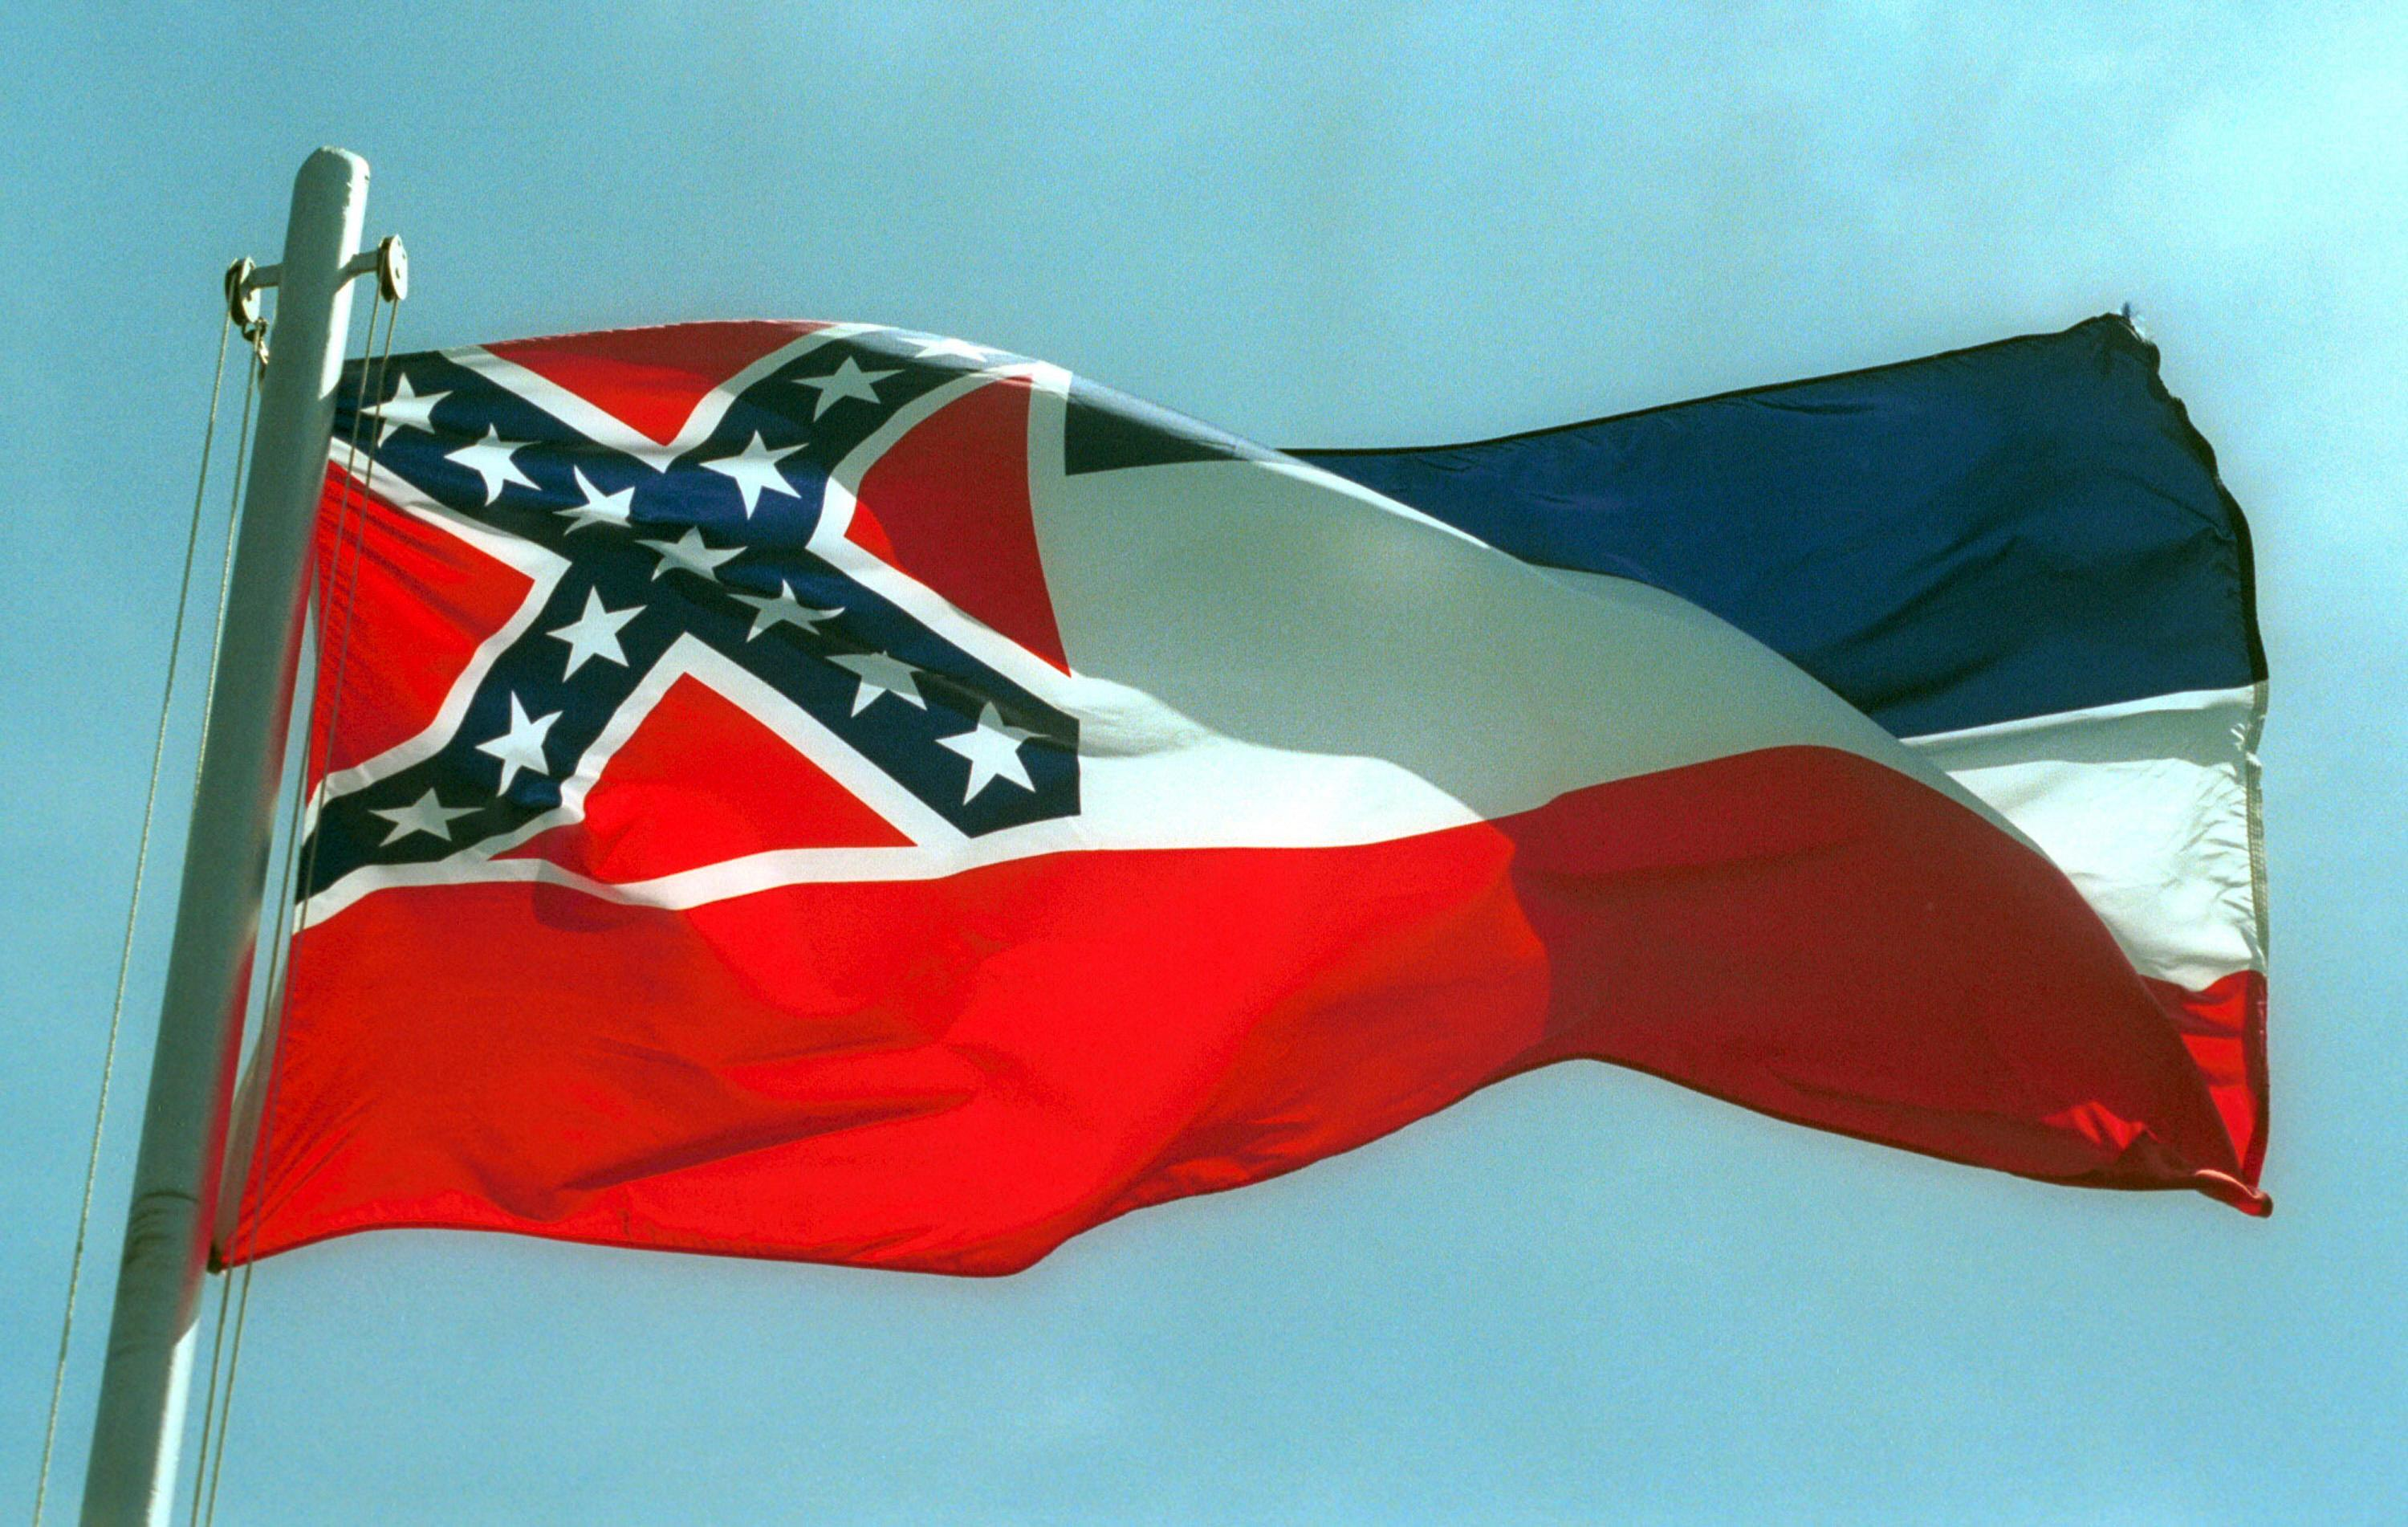 Supreme Court refuses to label Confederate flag emblem unconstitutional